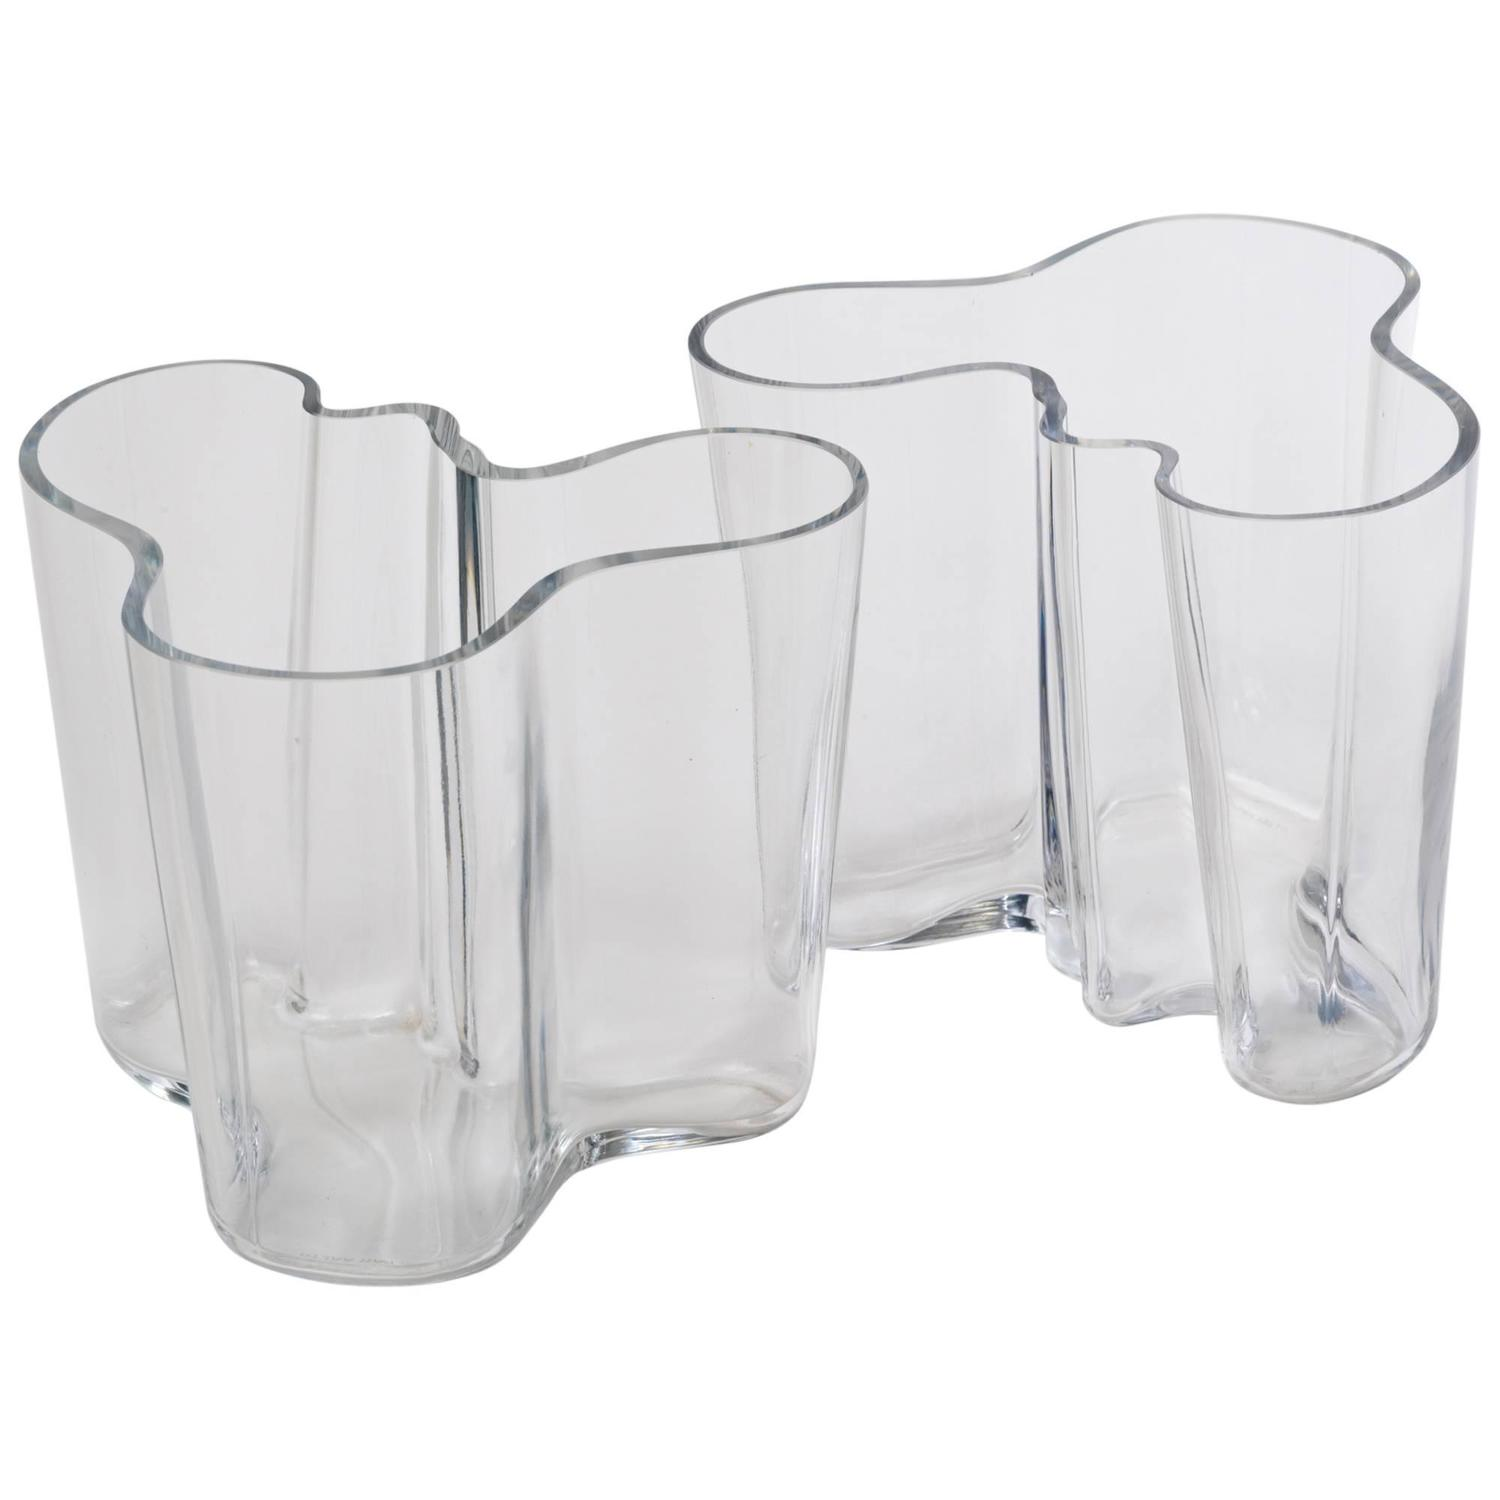 products glass by stromberg for asta strombergshyttan vase clear